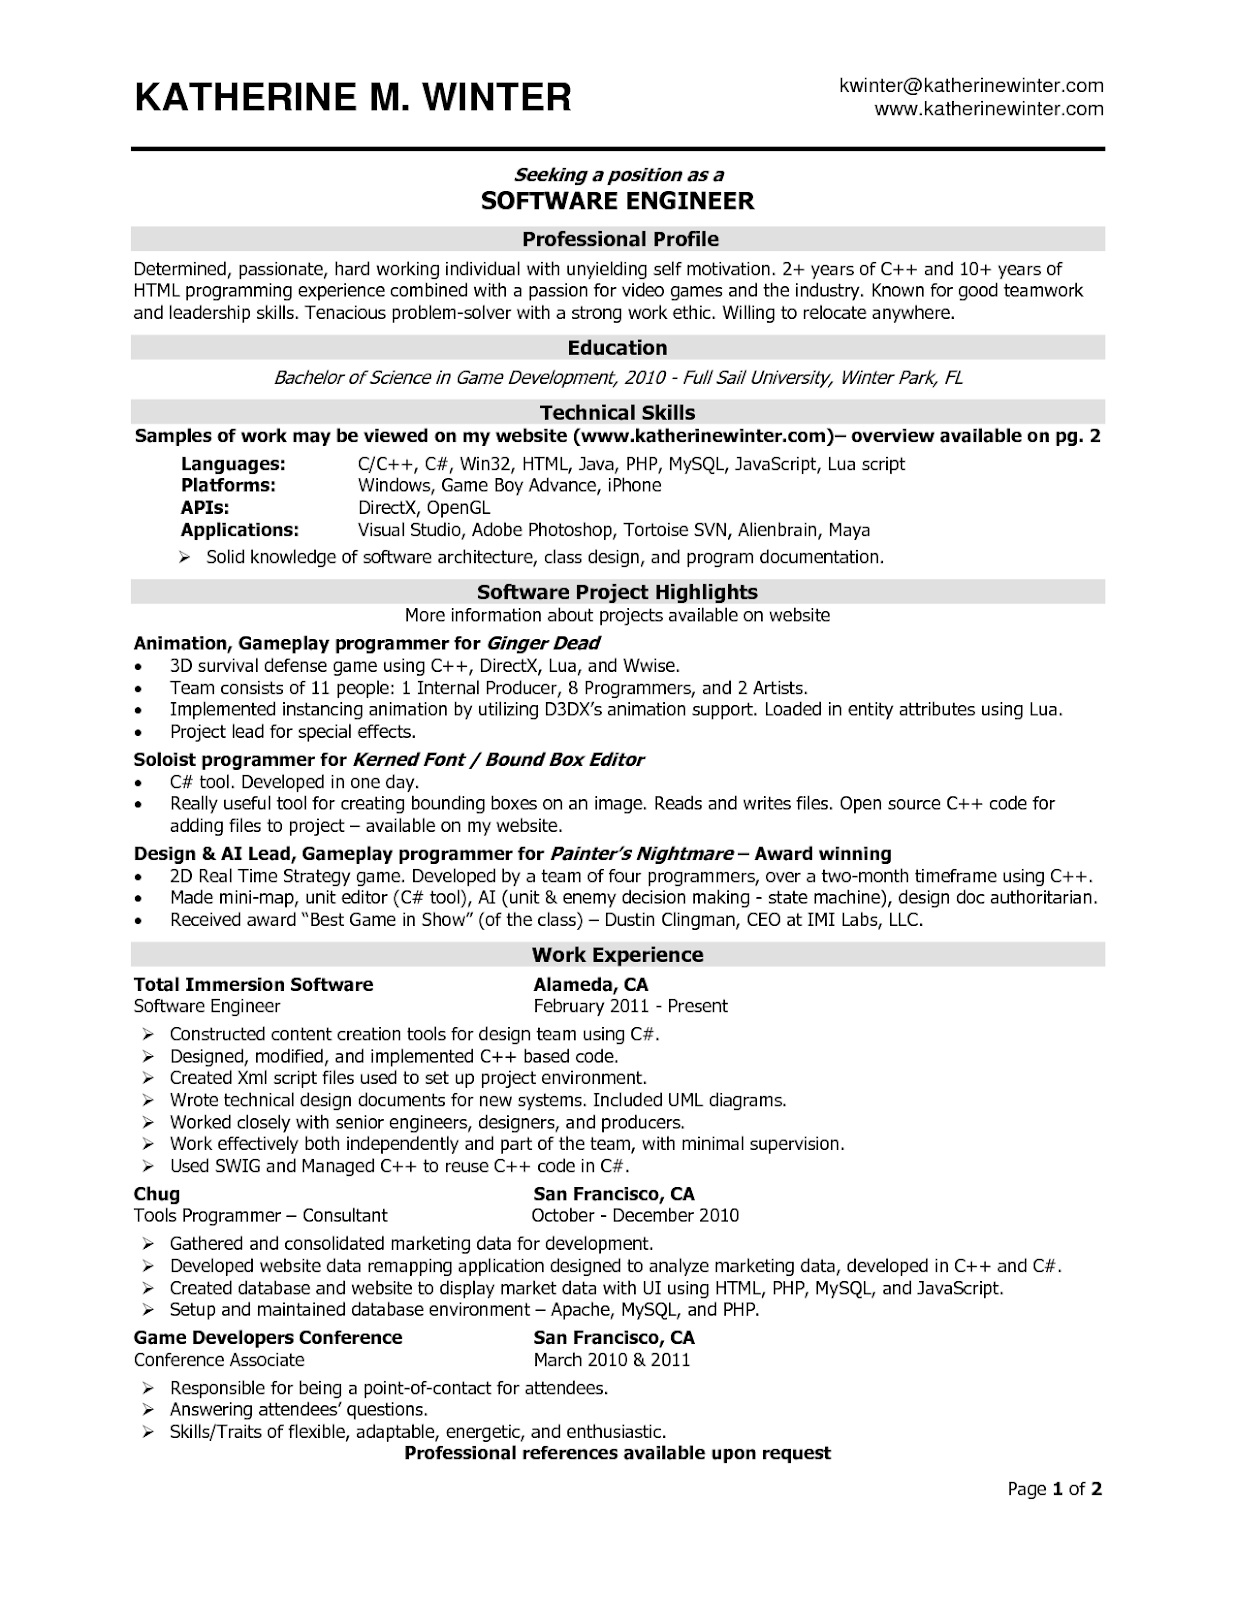 software engineer sample resume software engineer resume samples sample resumes software engineer sample resume 1214 network administrator resume sample - Network Design Engineer Sample Resume